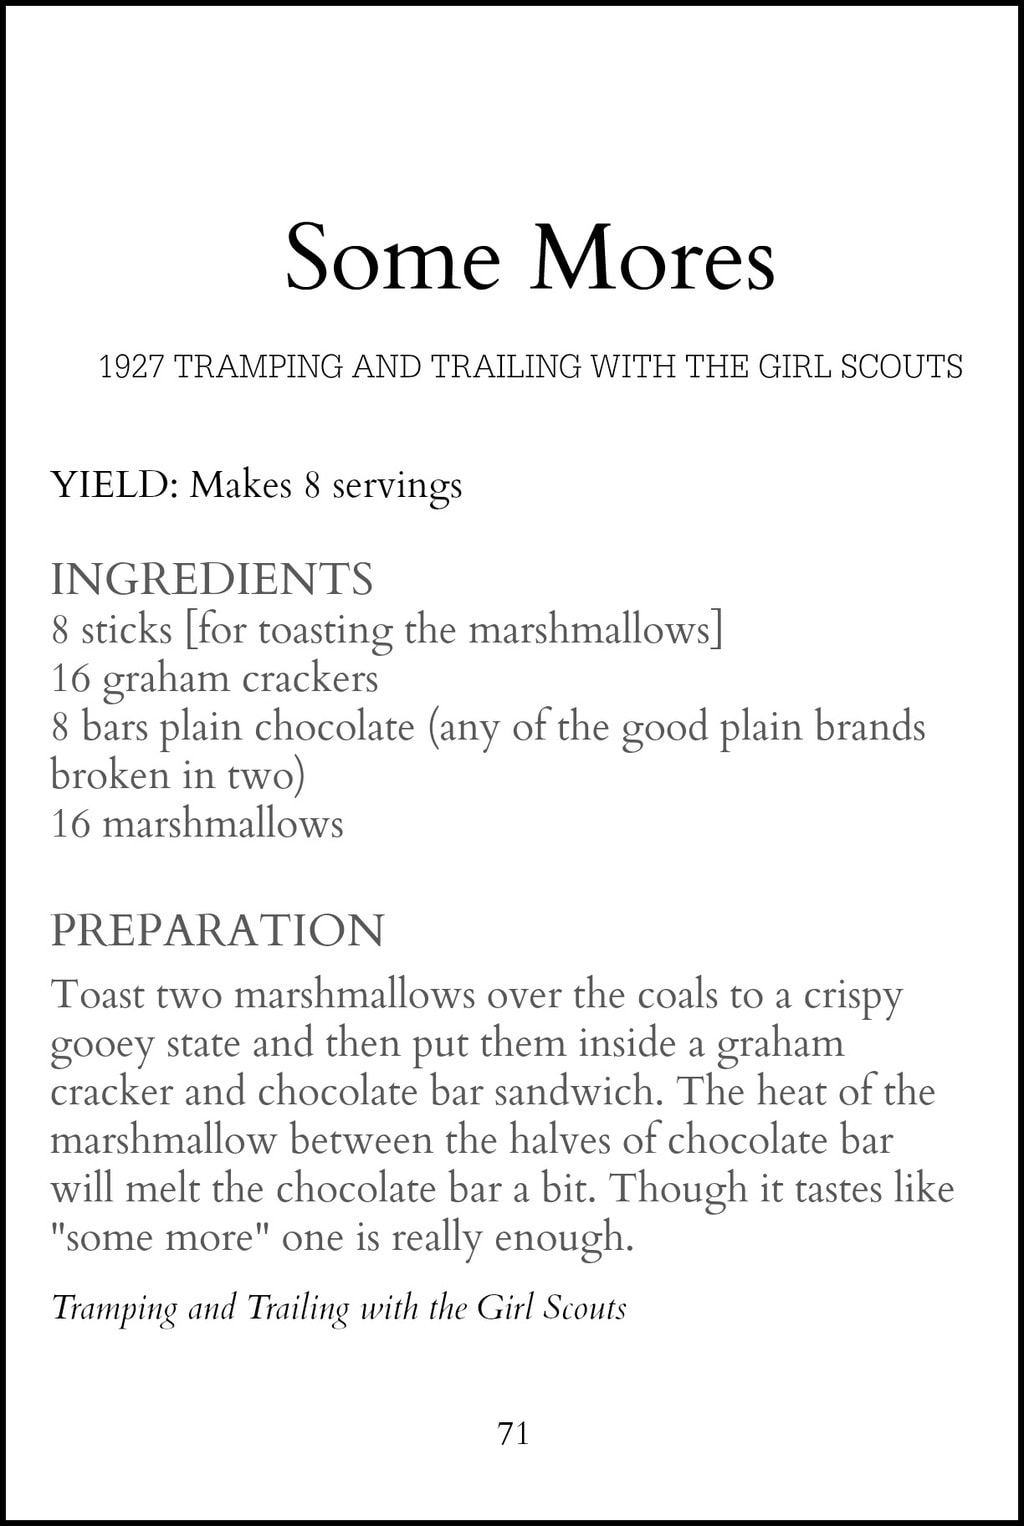 Original Some Mores Recipe